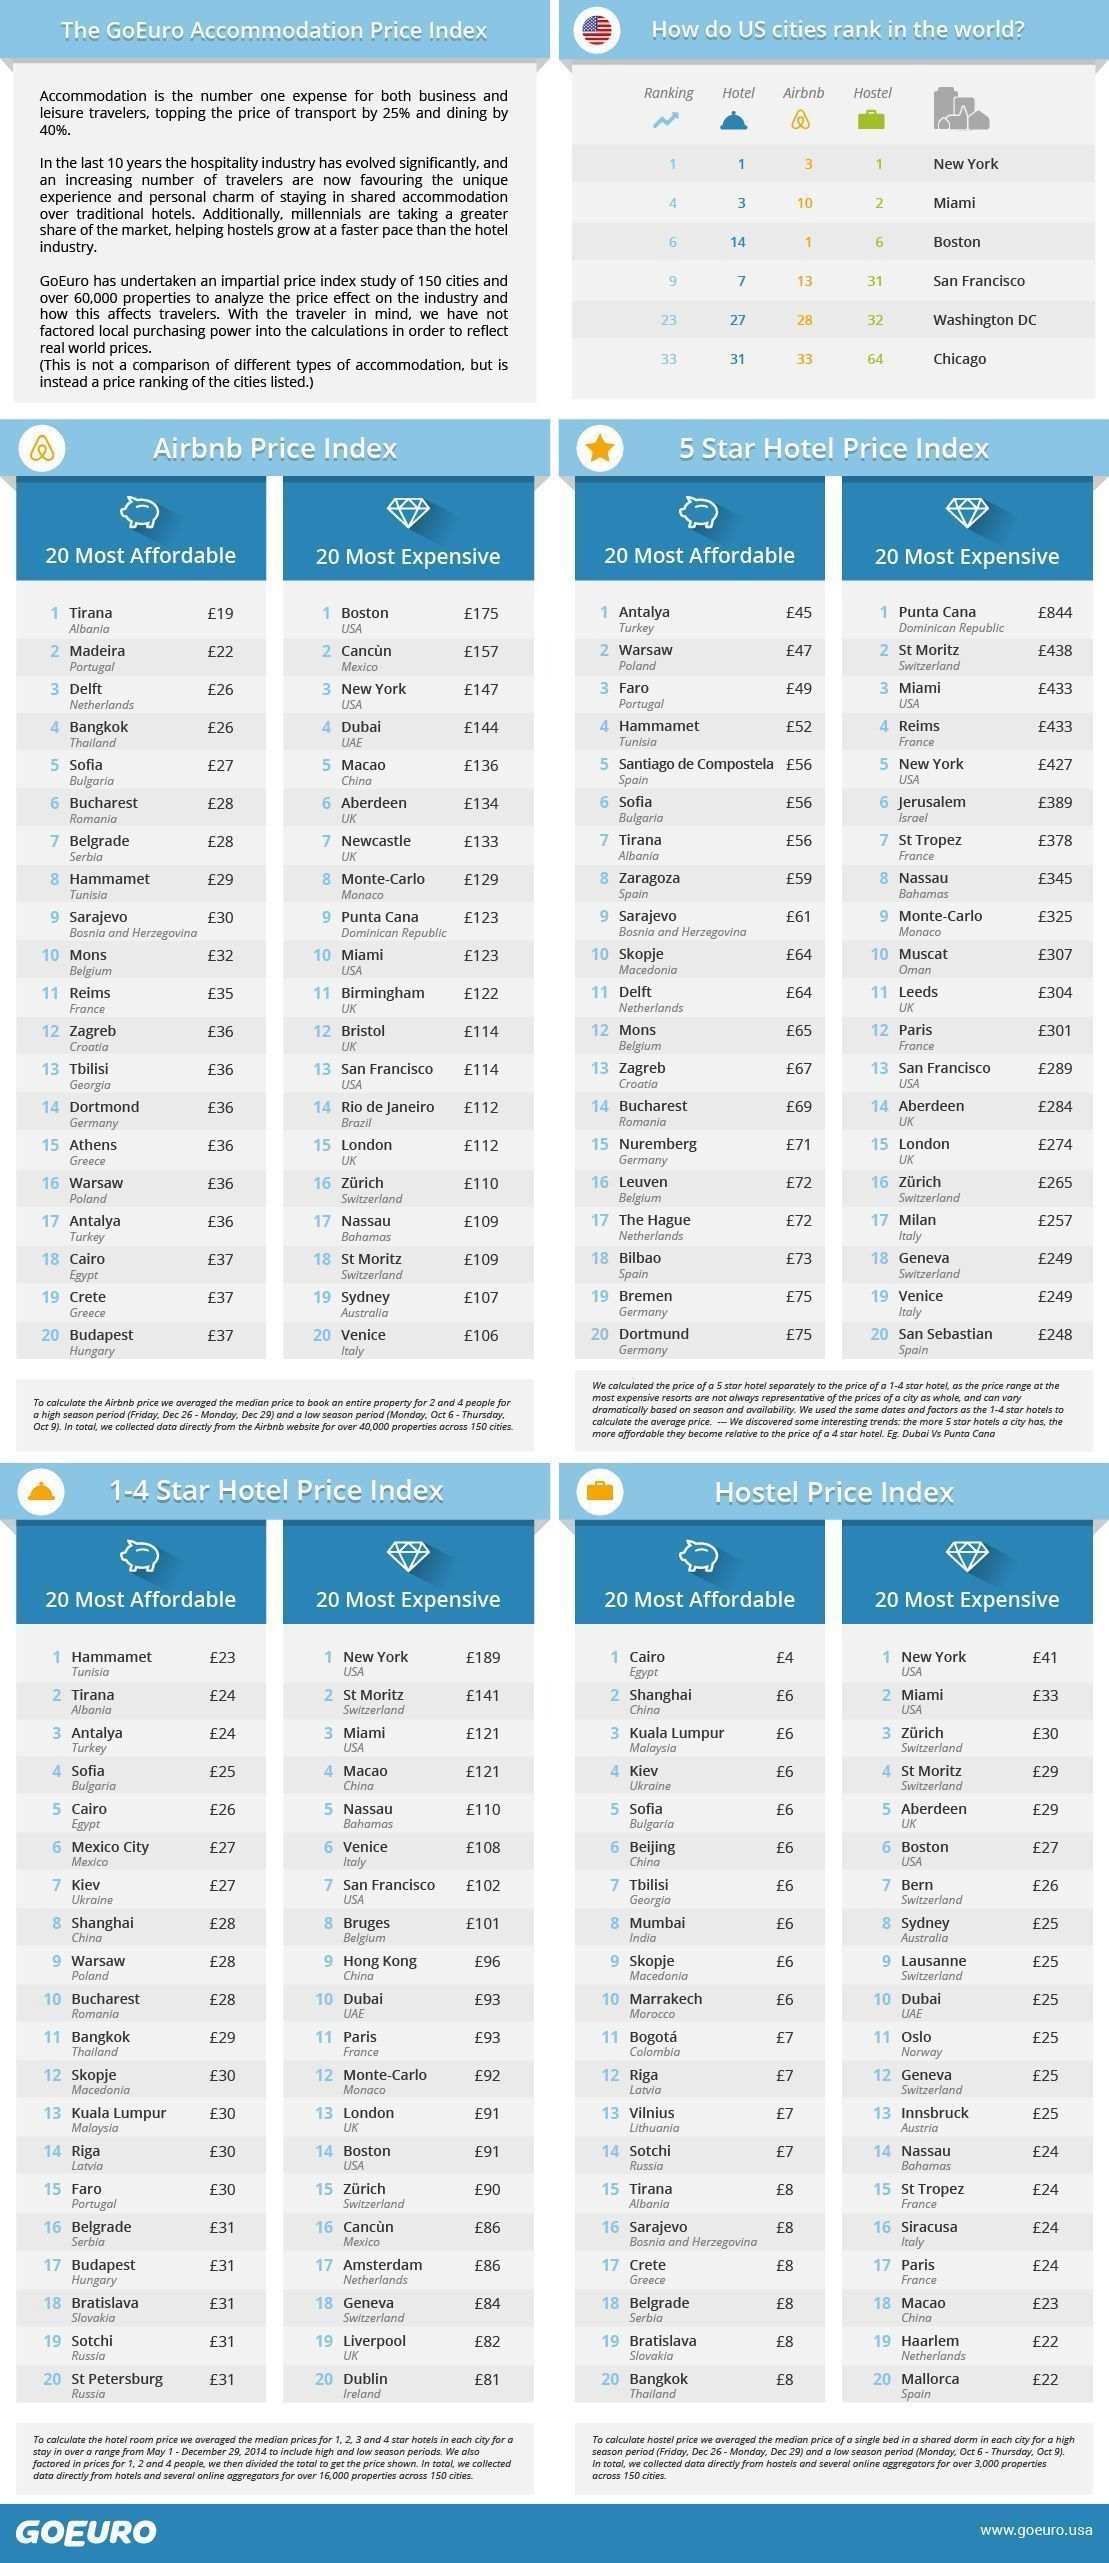 4 Us Cities Among The World S Most Expensive For Hotels Airbnb According To 2014 Accommodation Price Index Hotel Airbnb Hotel Price Hotel Marketing